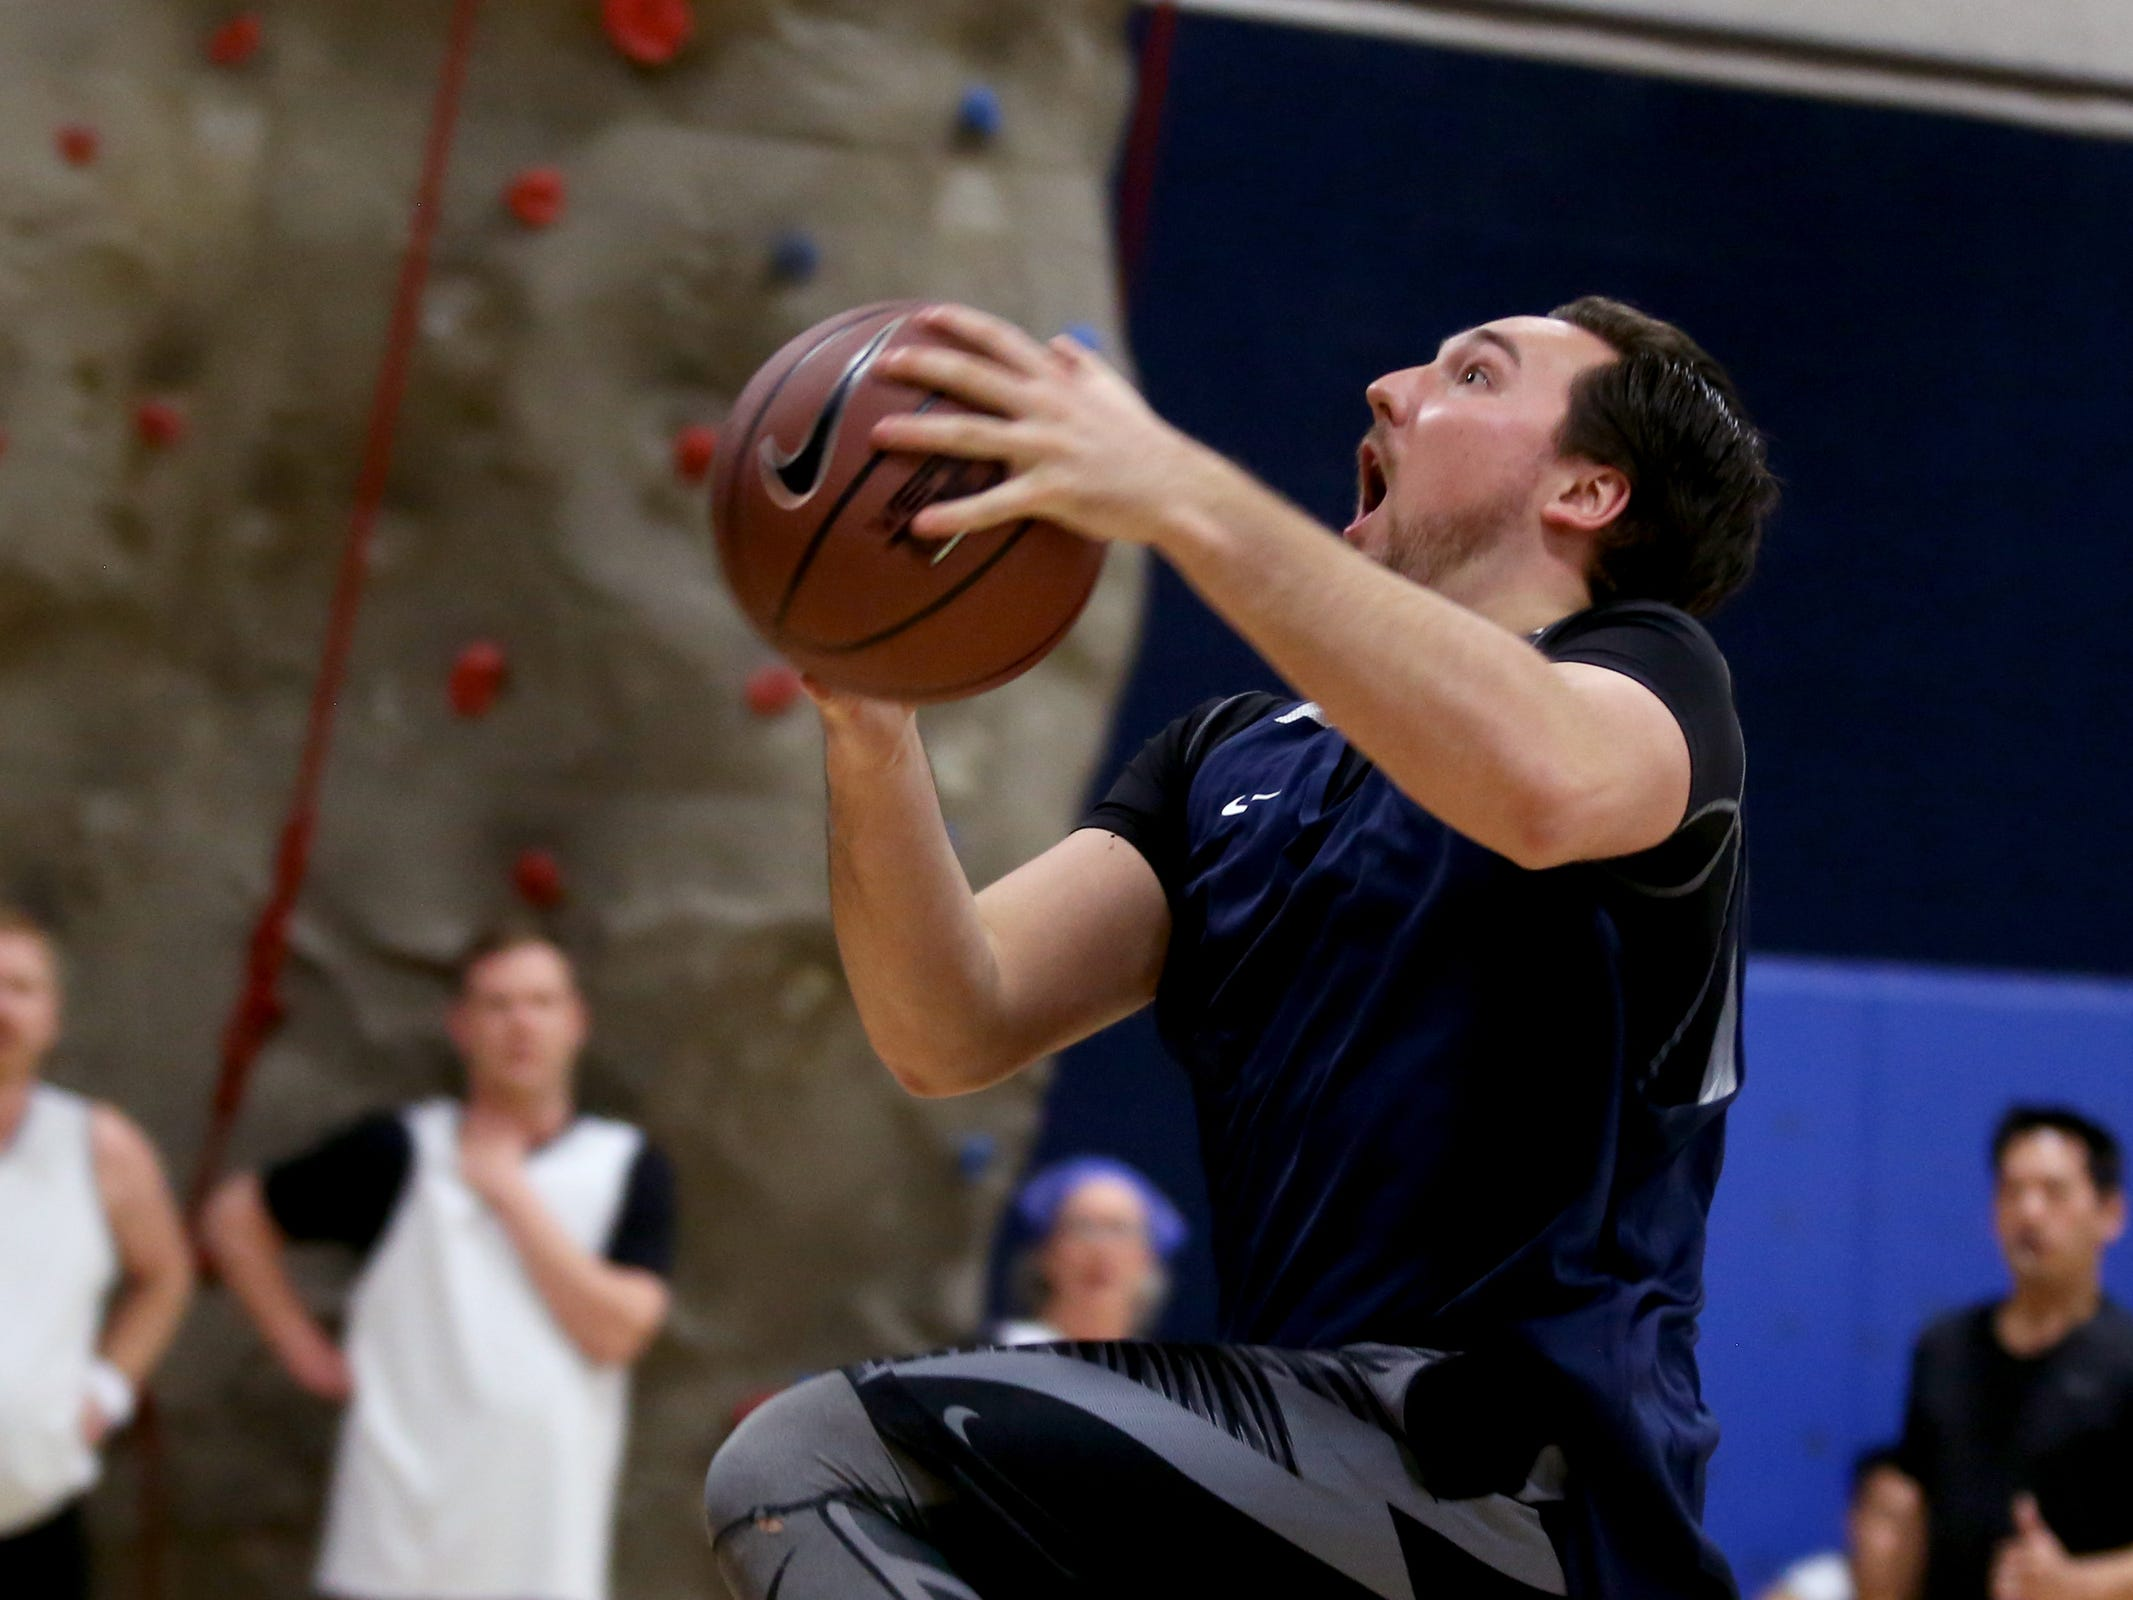 A House player competes in the second annual House vs. Senate charity basketball tournament at the Boys & Girls Club in Salem on March 13, 2019. The tournament raised more than $10,000 for the Oregon Alliance of Boys & Girls Clubs.